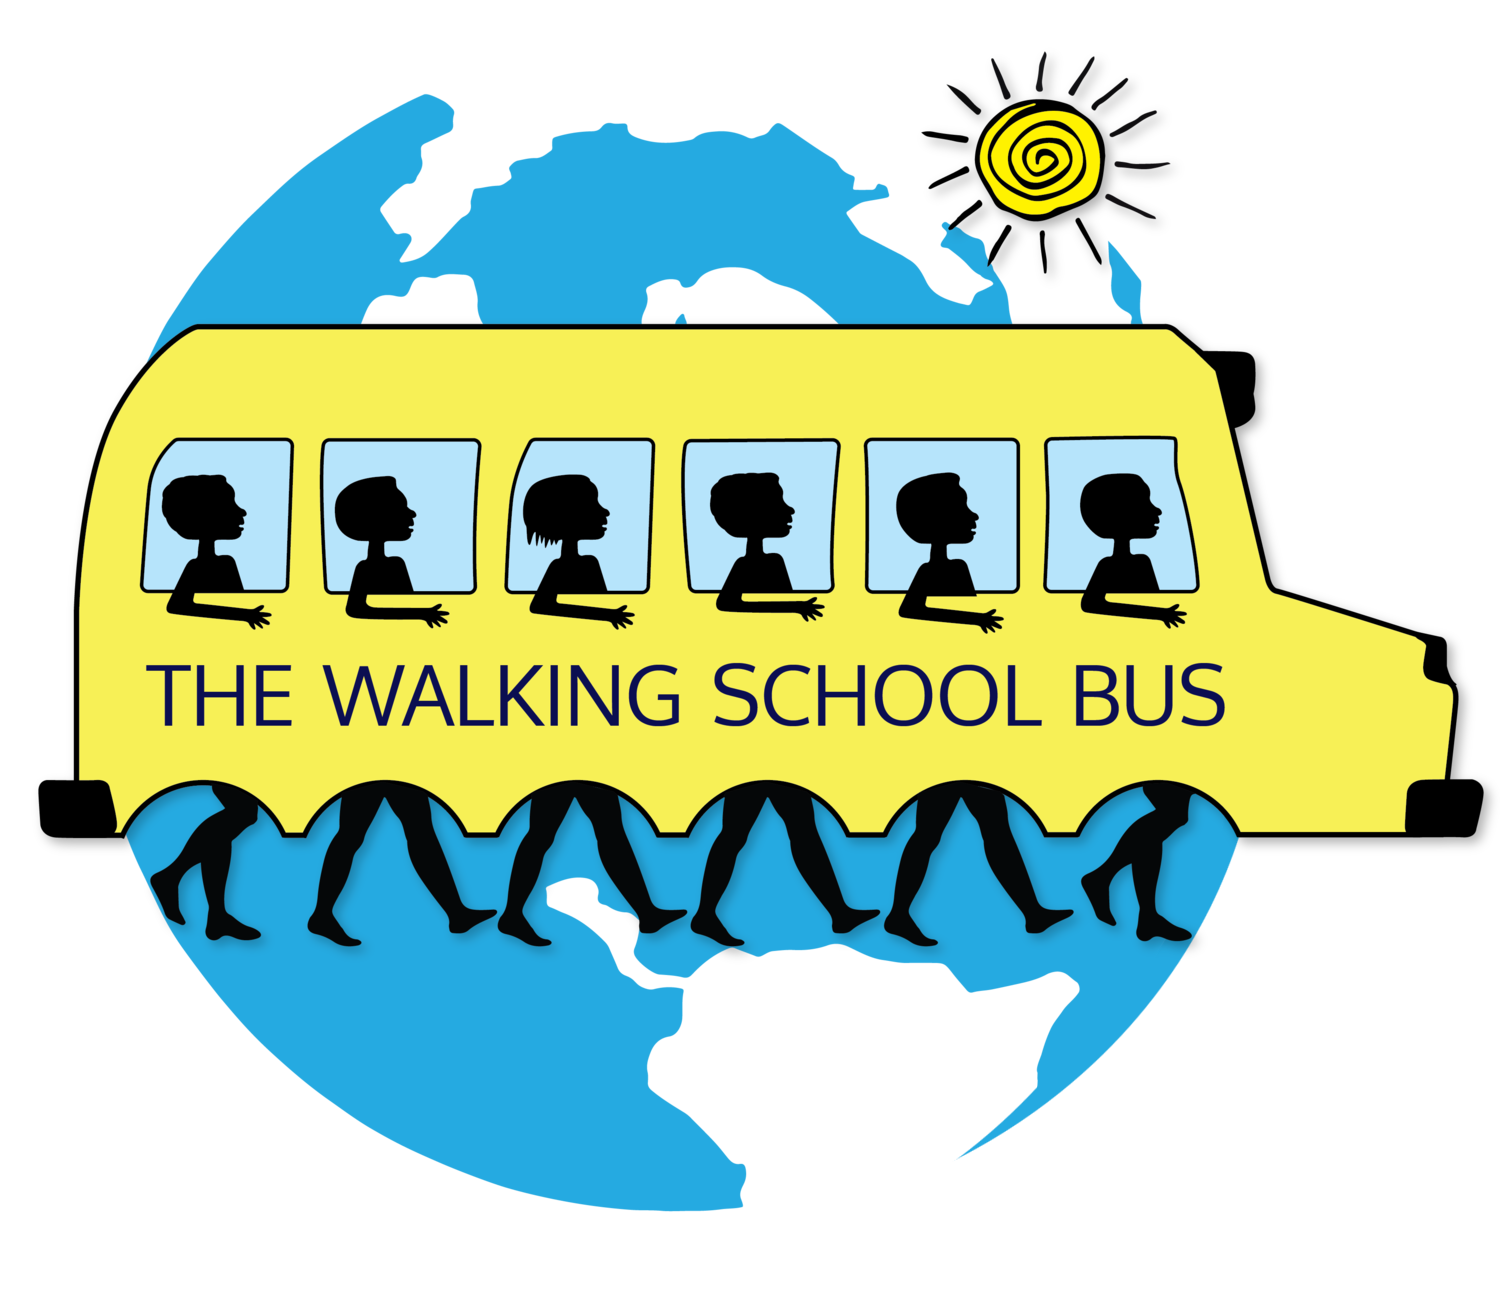 Walking School Bus logo